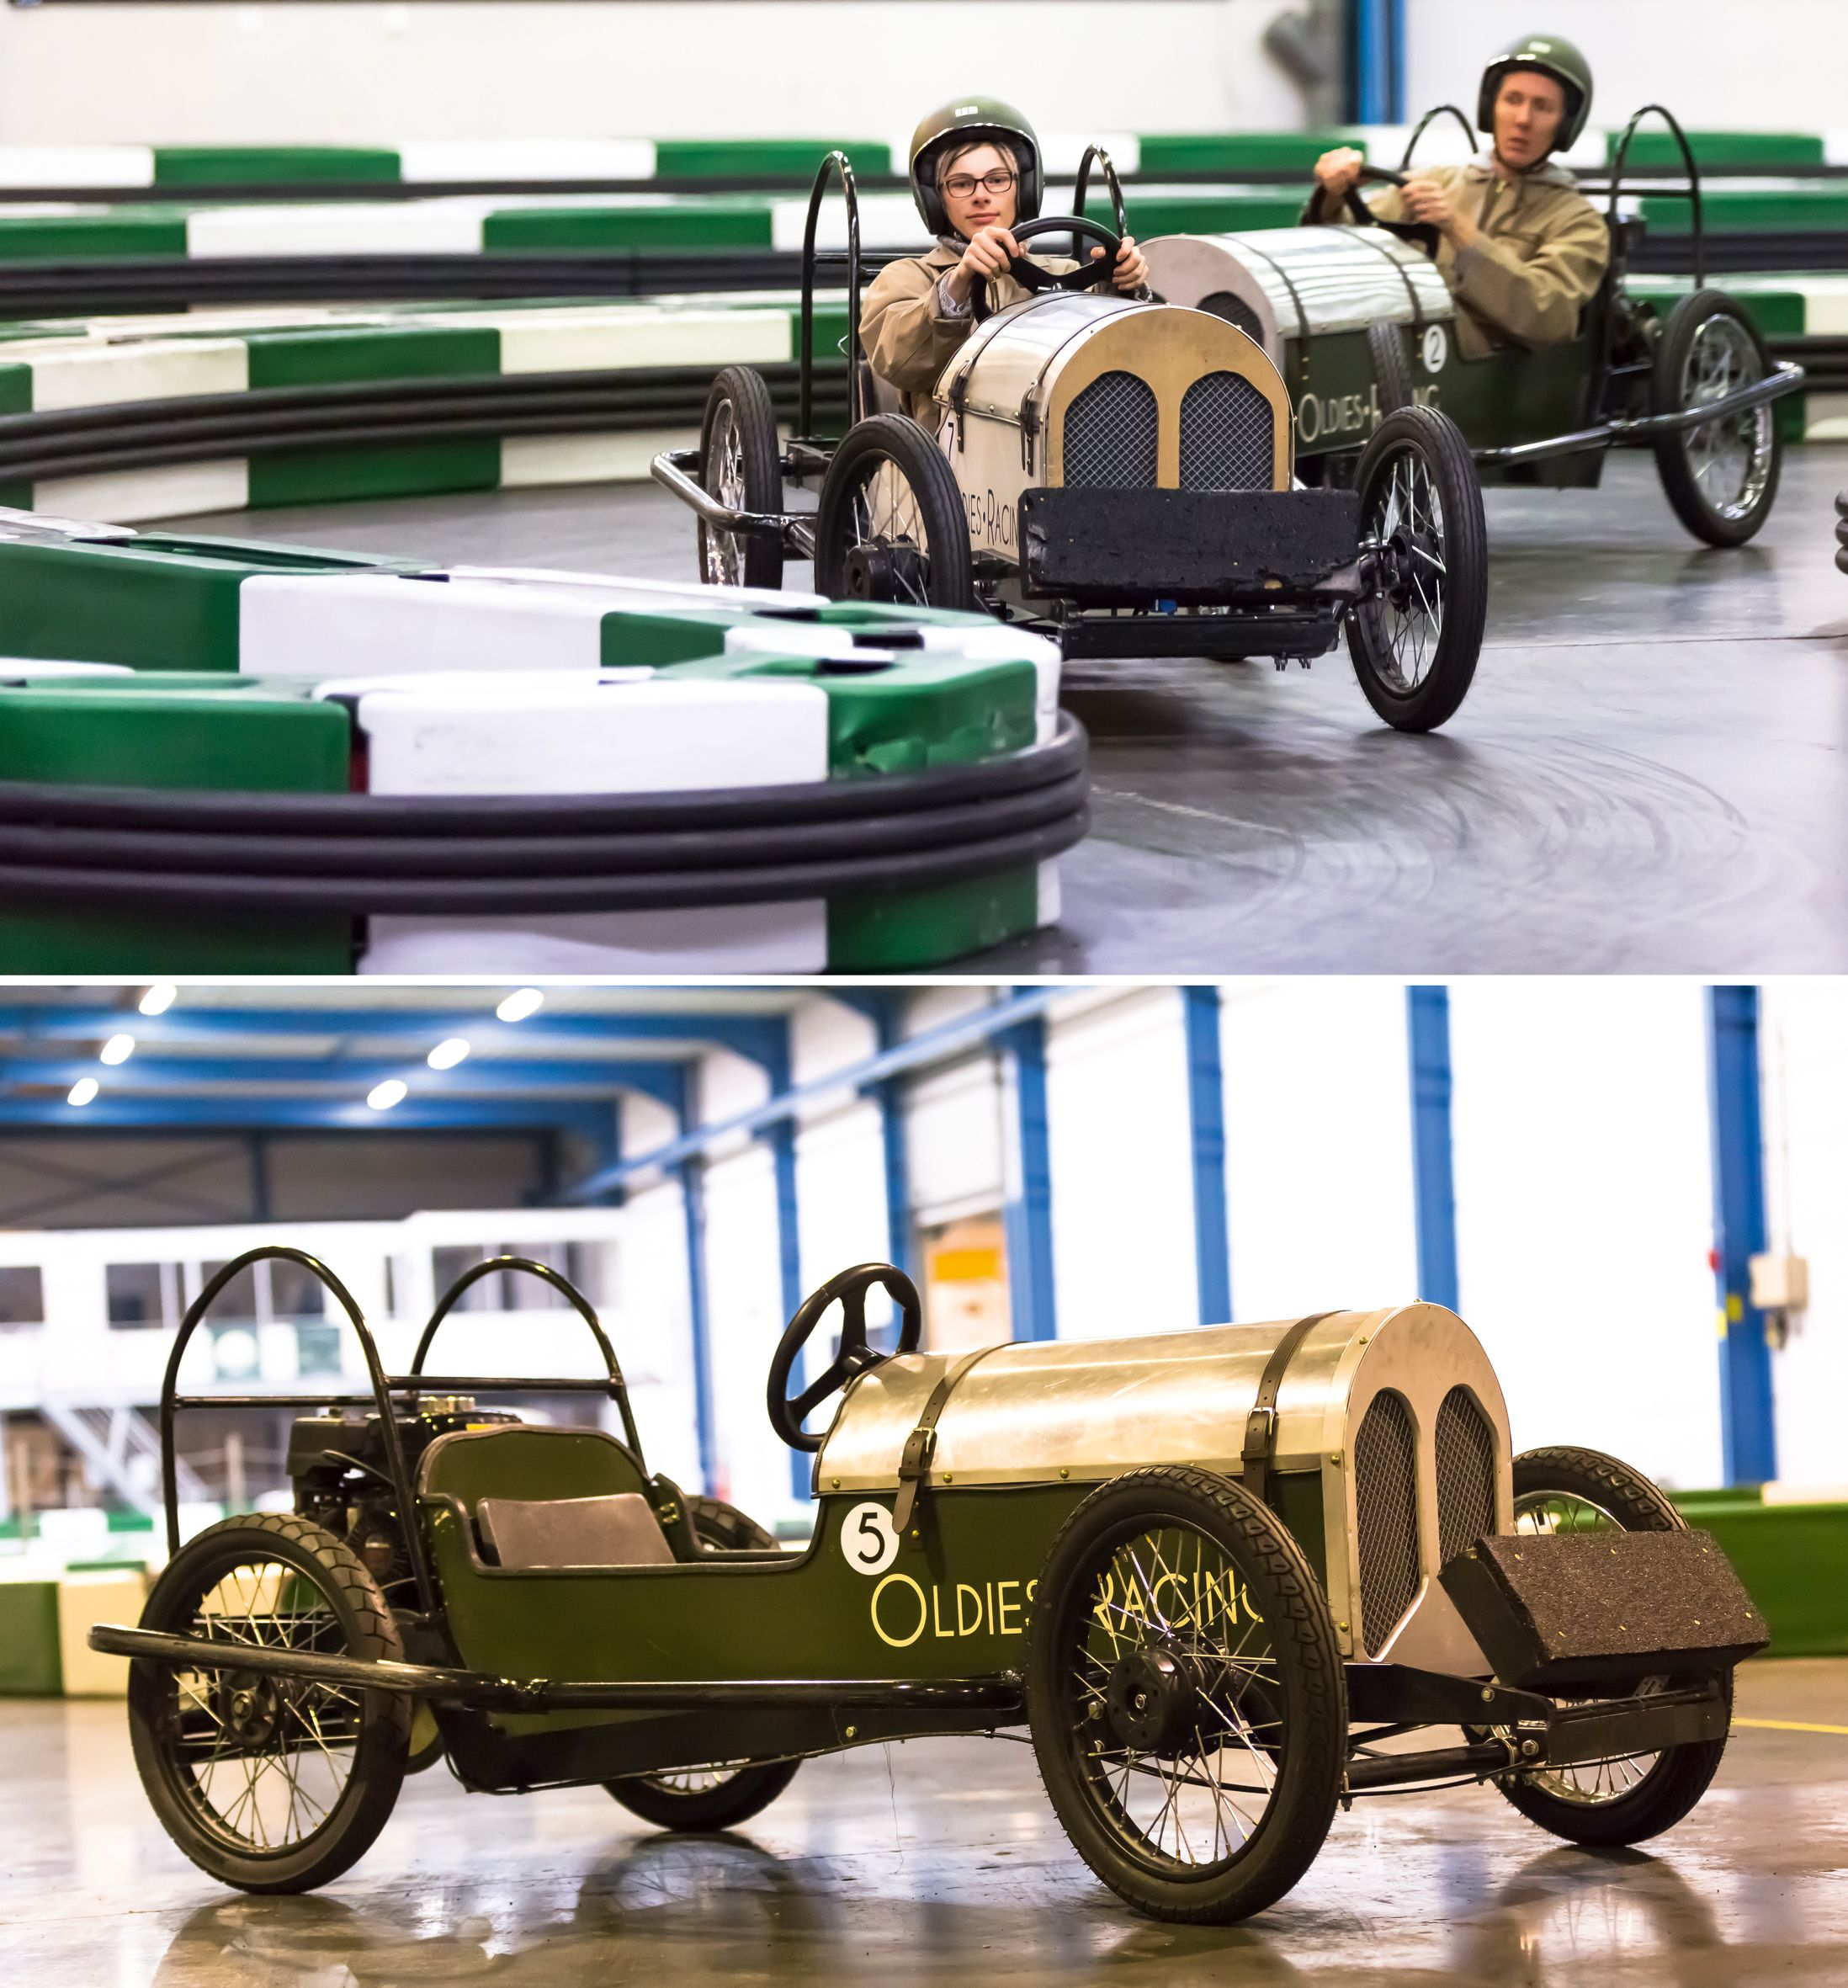 oldies racing leers pilotez une r plique de voiture de course des ann es 1920 il n existe. Black Bedroom Furniture Sets. Home Design Ideas